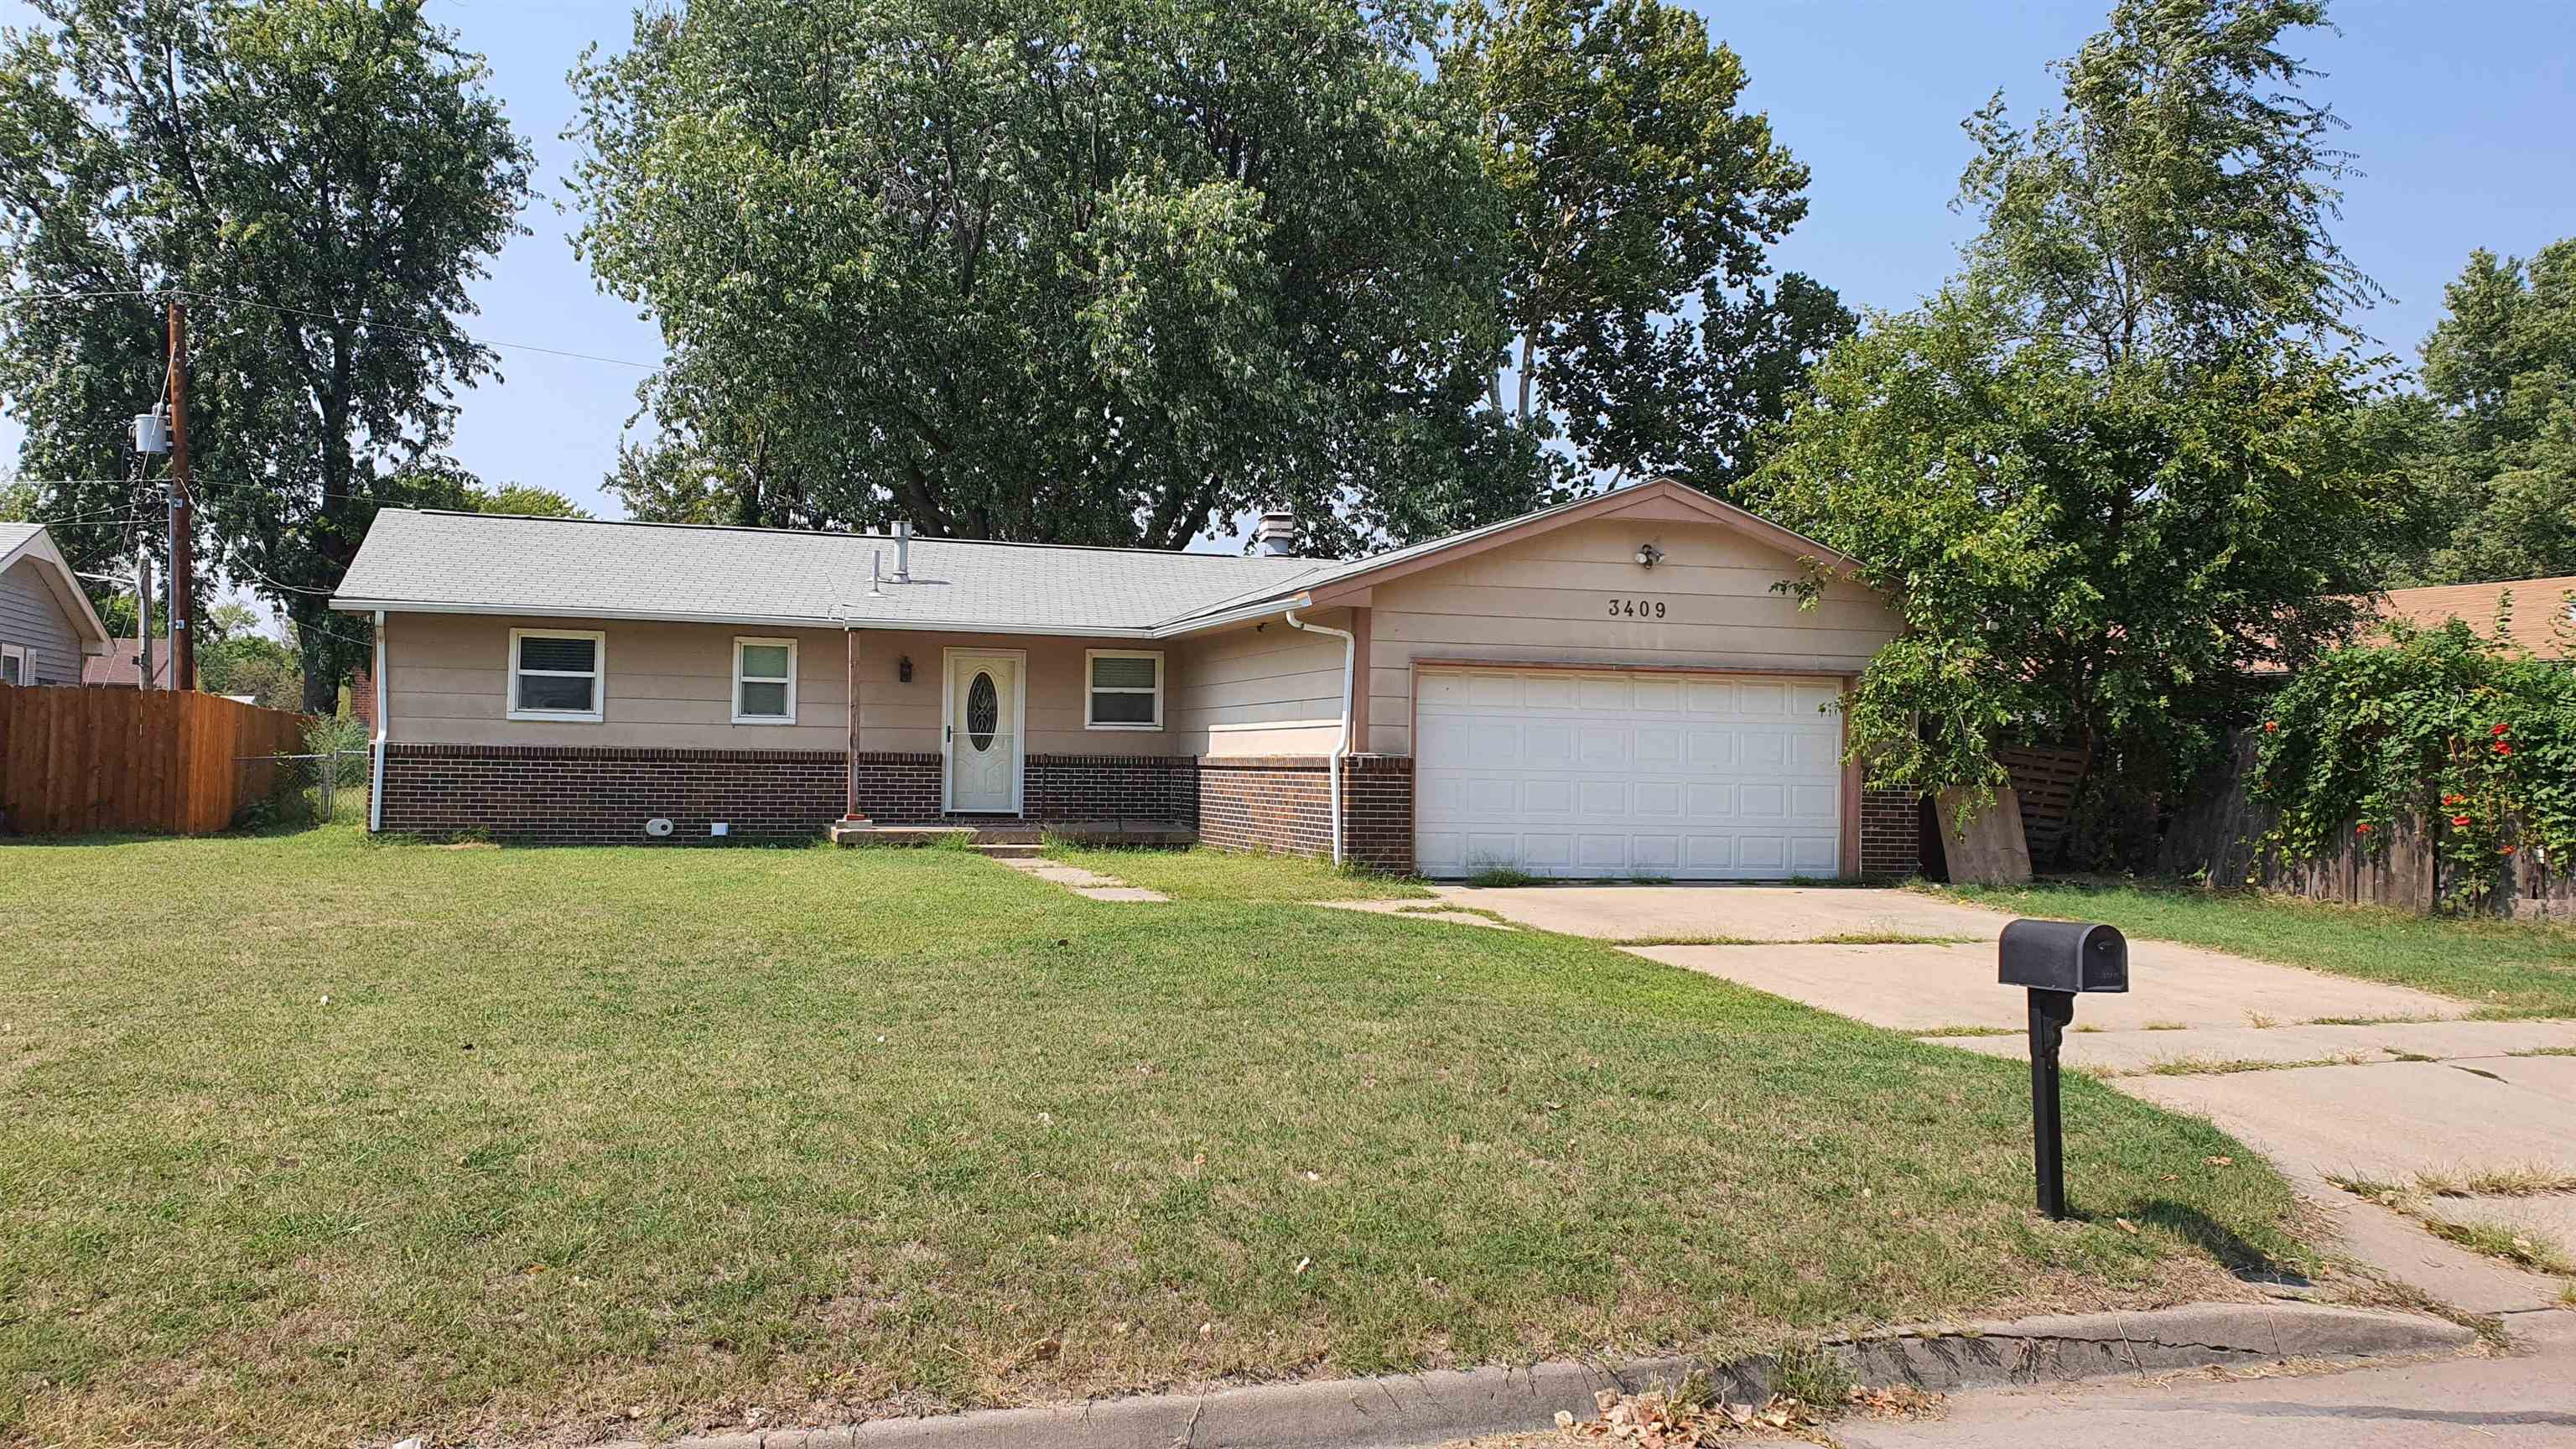 Investor and/or Sweat Equity Opportunity!! 3 bedrooms + additional bonus room. 2.5 baths, 2-car gara